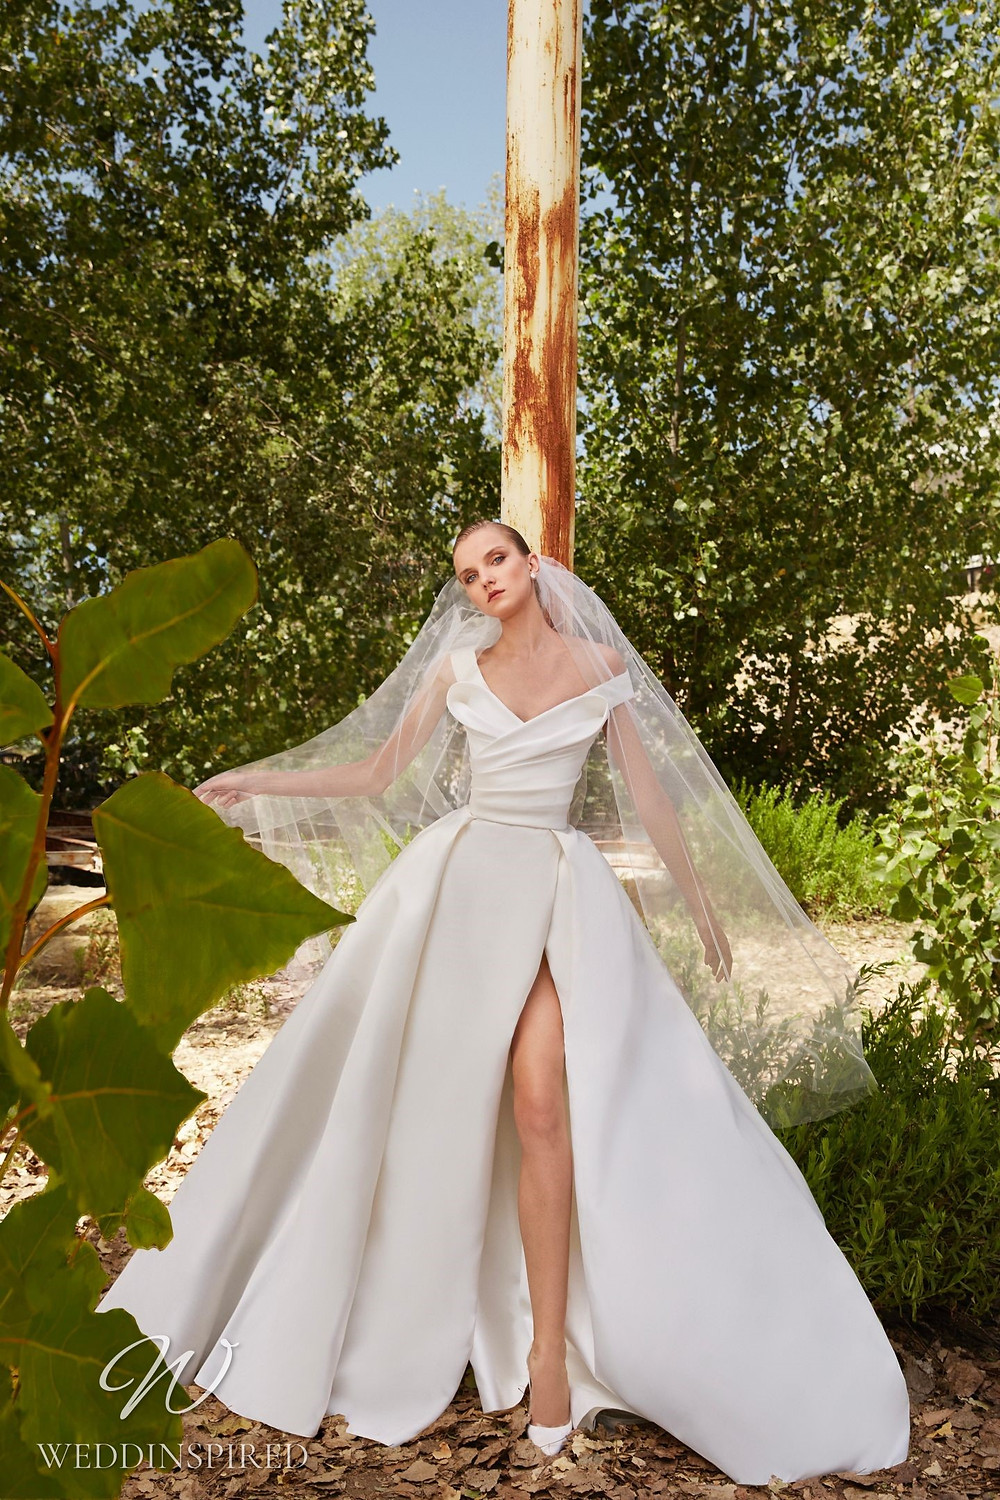 An Elie Saab Spring 2021 off the shoulder satin ball gown wedding dress with a high slit